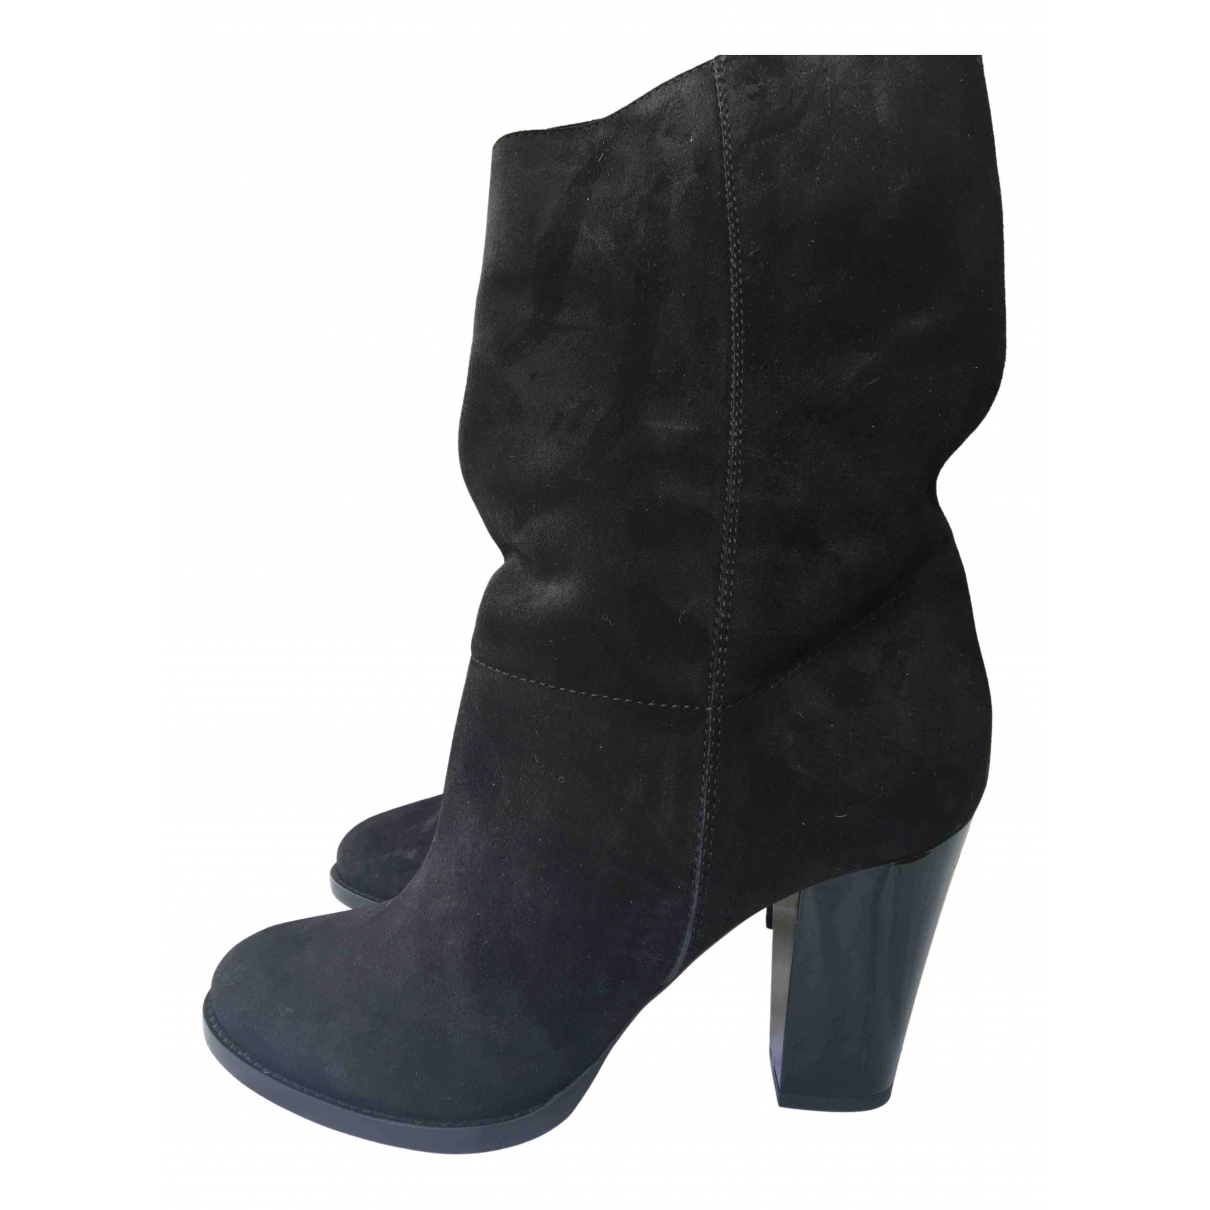 Jimmy Choo N Black Suede Ankle boots for Women 40 EU